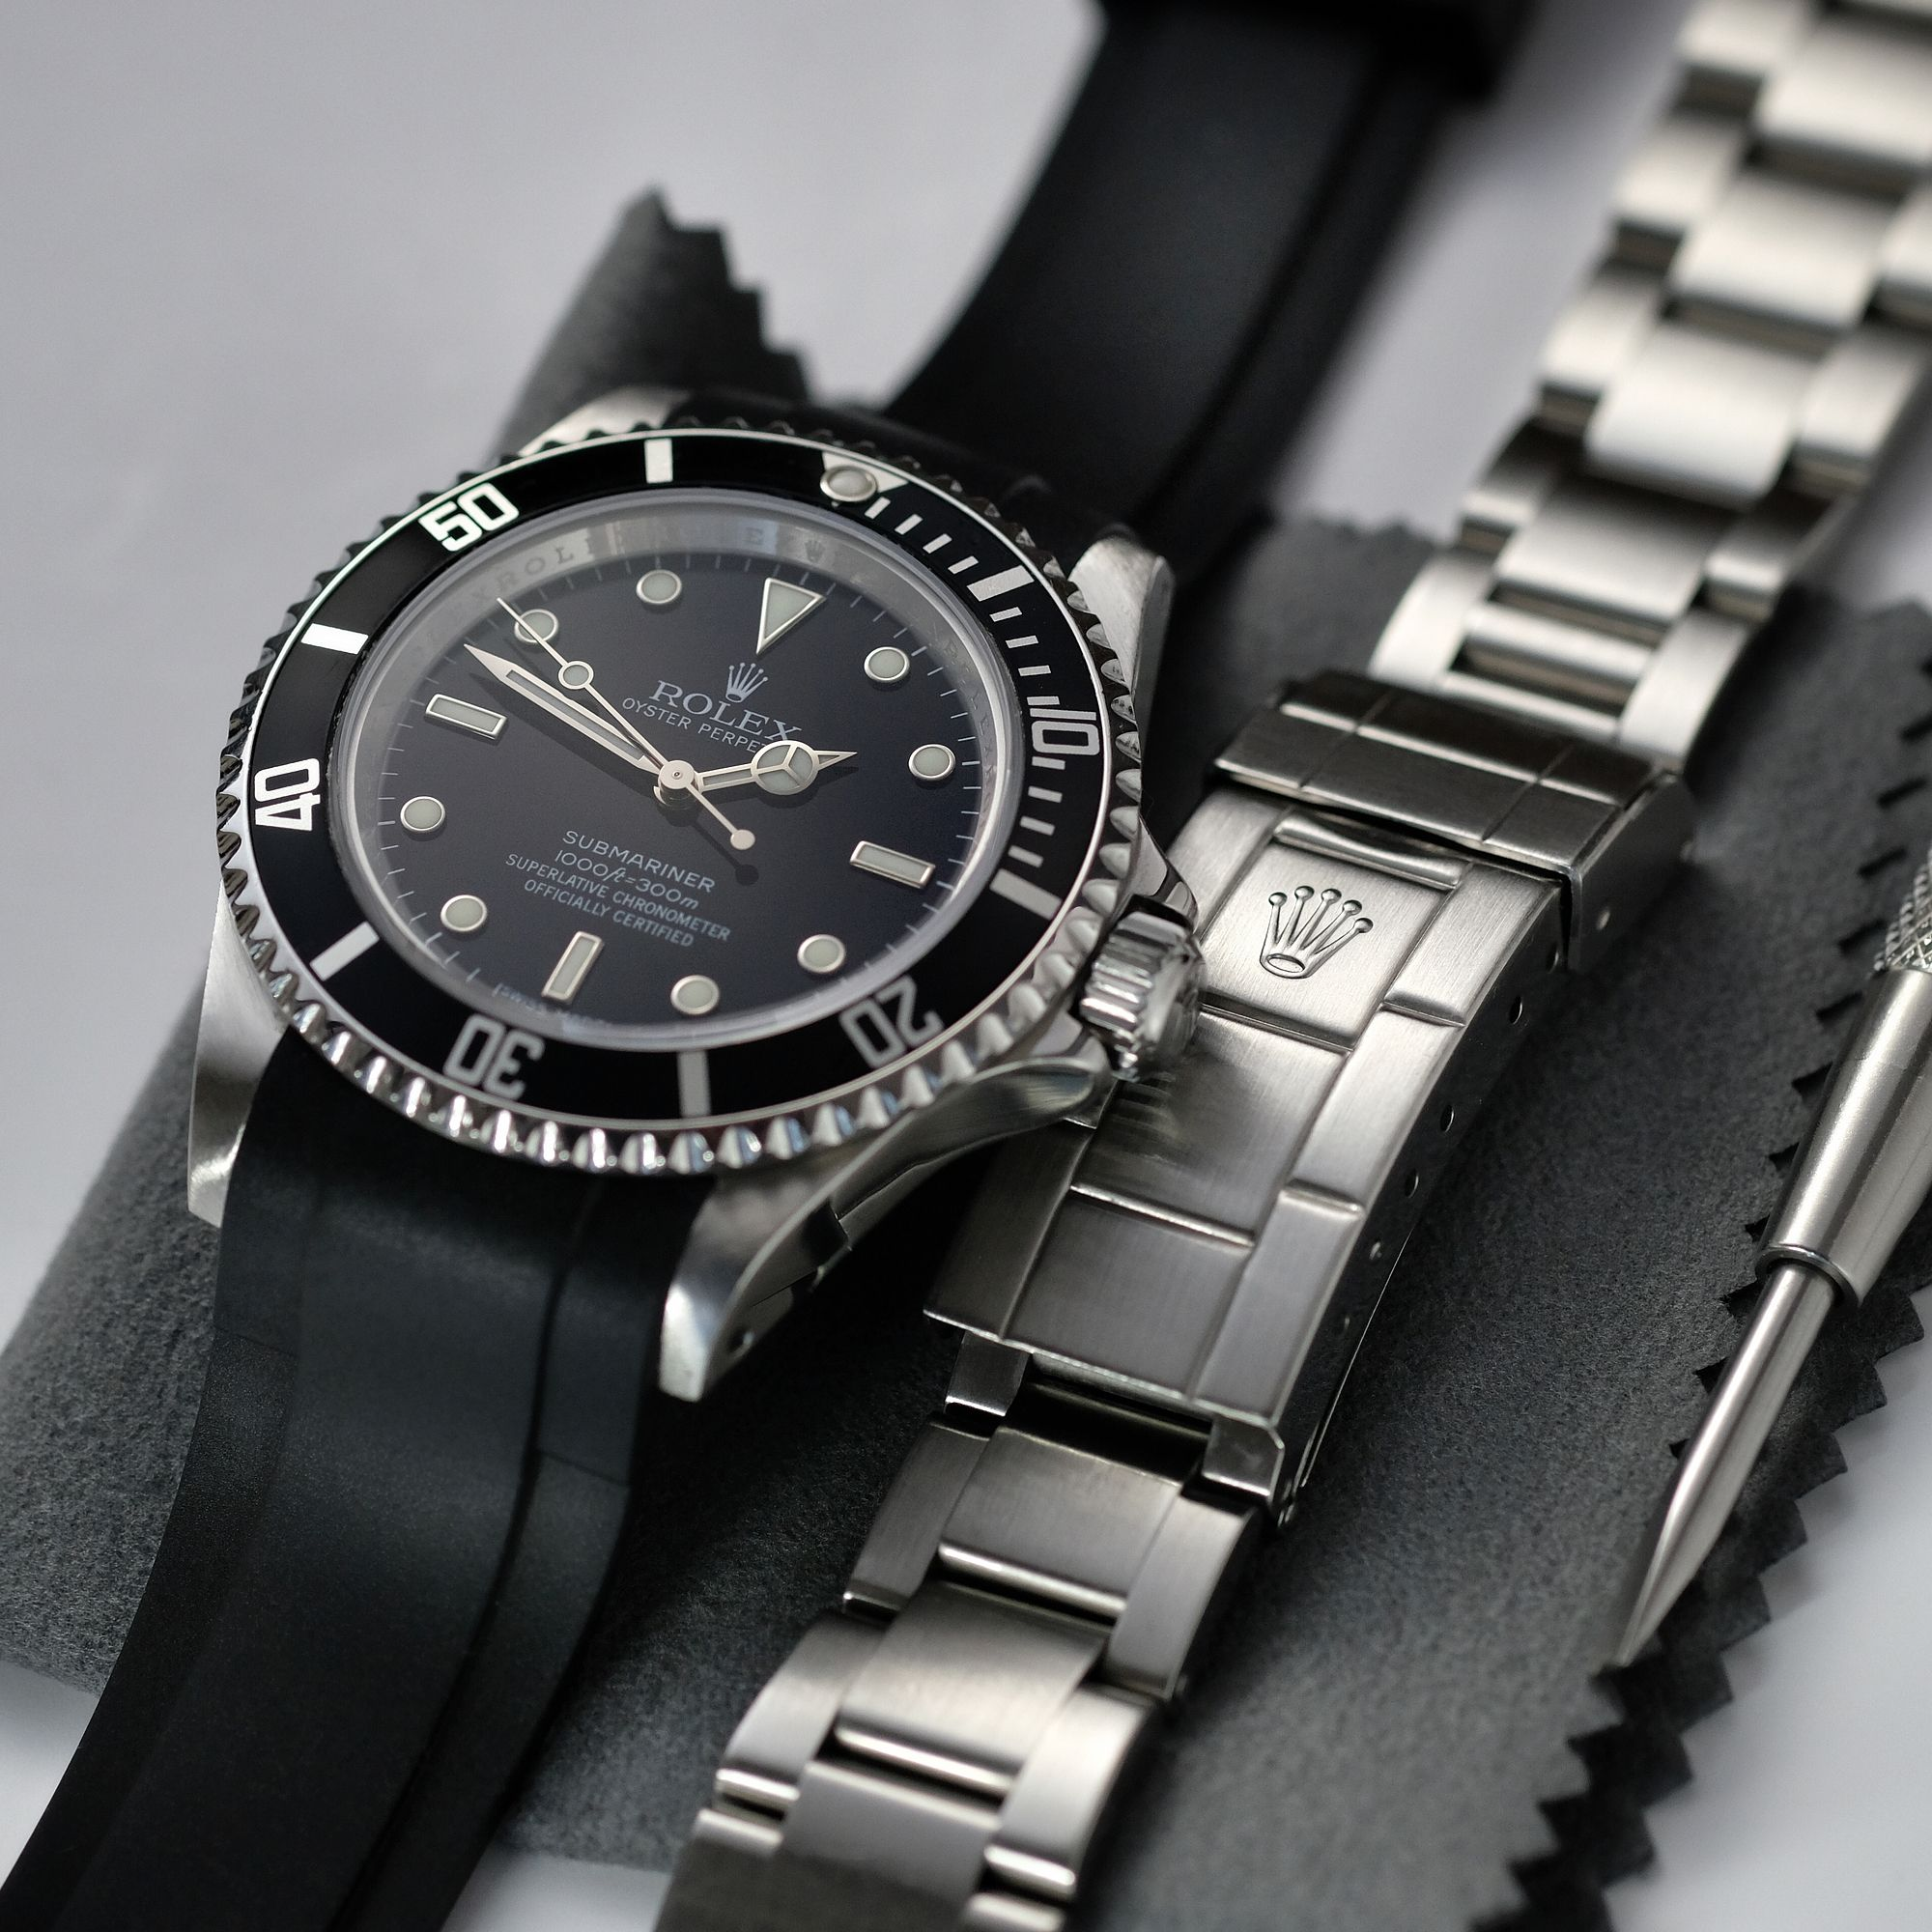 Rolex Submariner Without Date Curved End Rubber Strap 5 Digits Rolex Submariner Rolex Oyster Perpetual Date Best Watches For Men